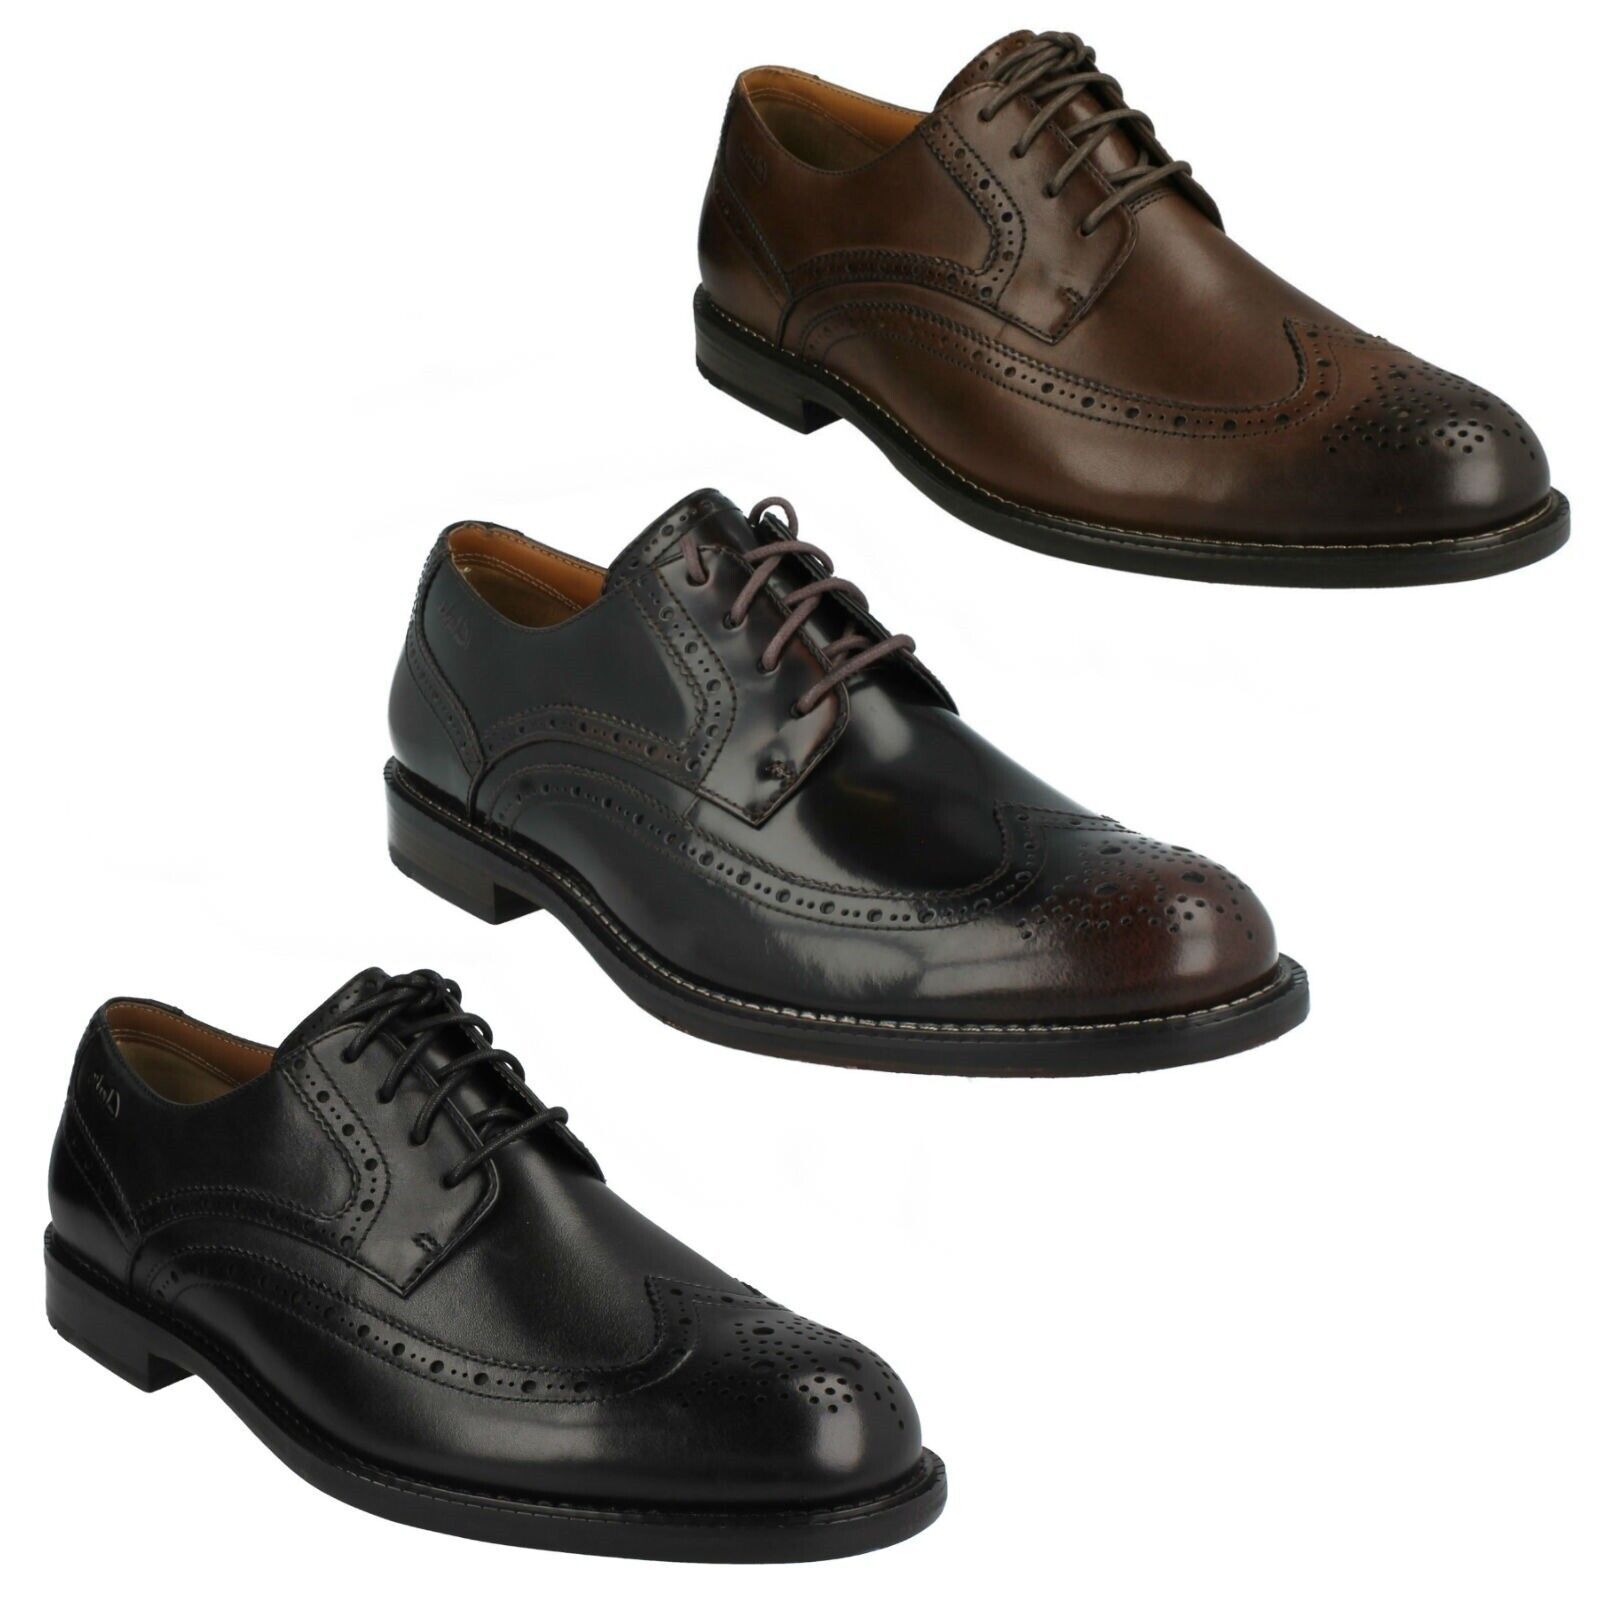 DORSET LIMIT MENS CLARKS SMART LEATHER FORMAL LACE UP PUNCHED BROGUES schuhe Größe